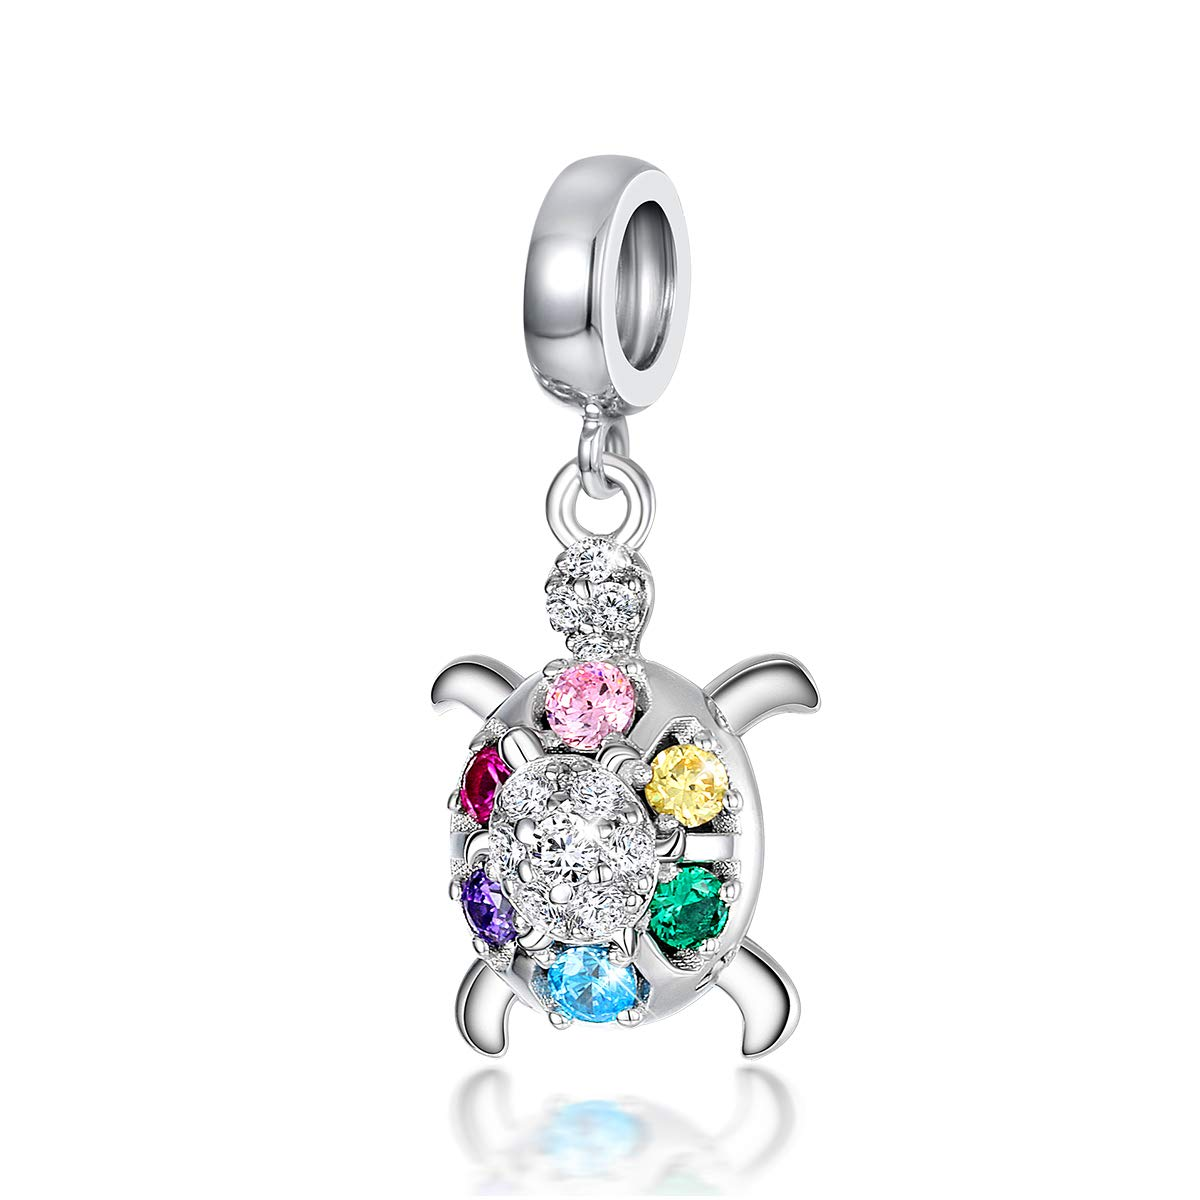 FOREVER QUEEN Mother Baby Turtle Bead Wisdom Tortoise Charm fit Charms Bracelet 925 Sterling Silver Dangle Charm with Gift Box for Mother